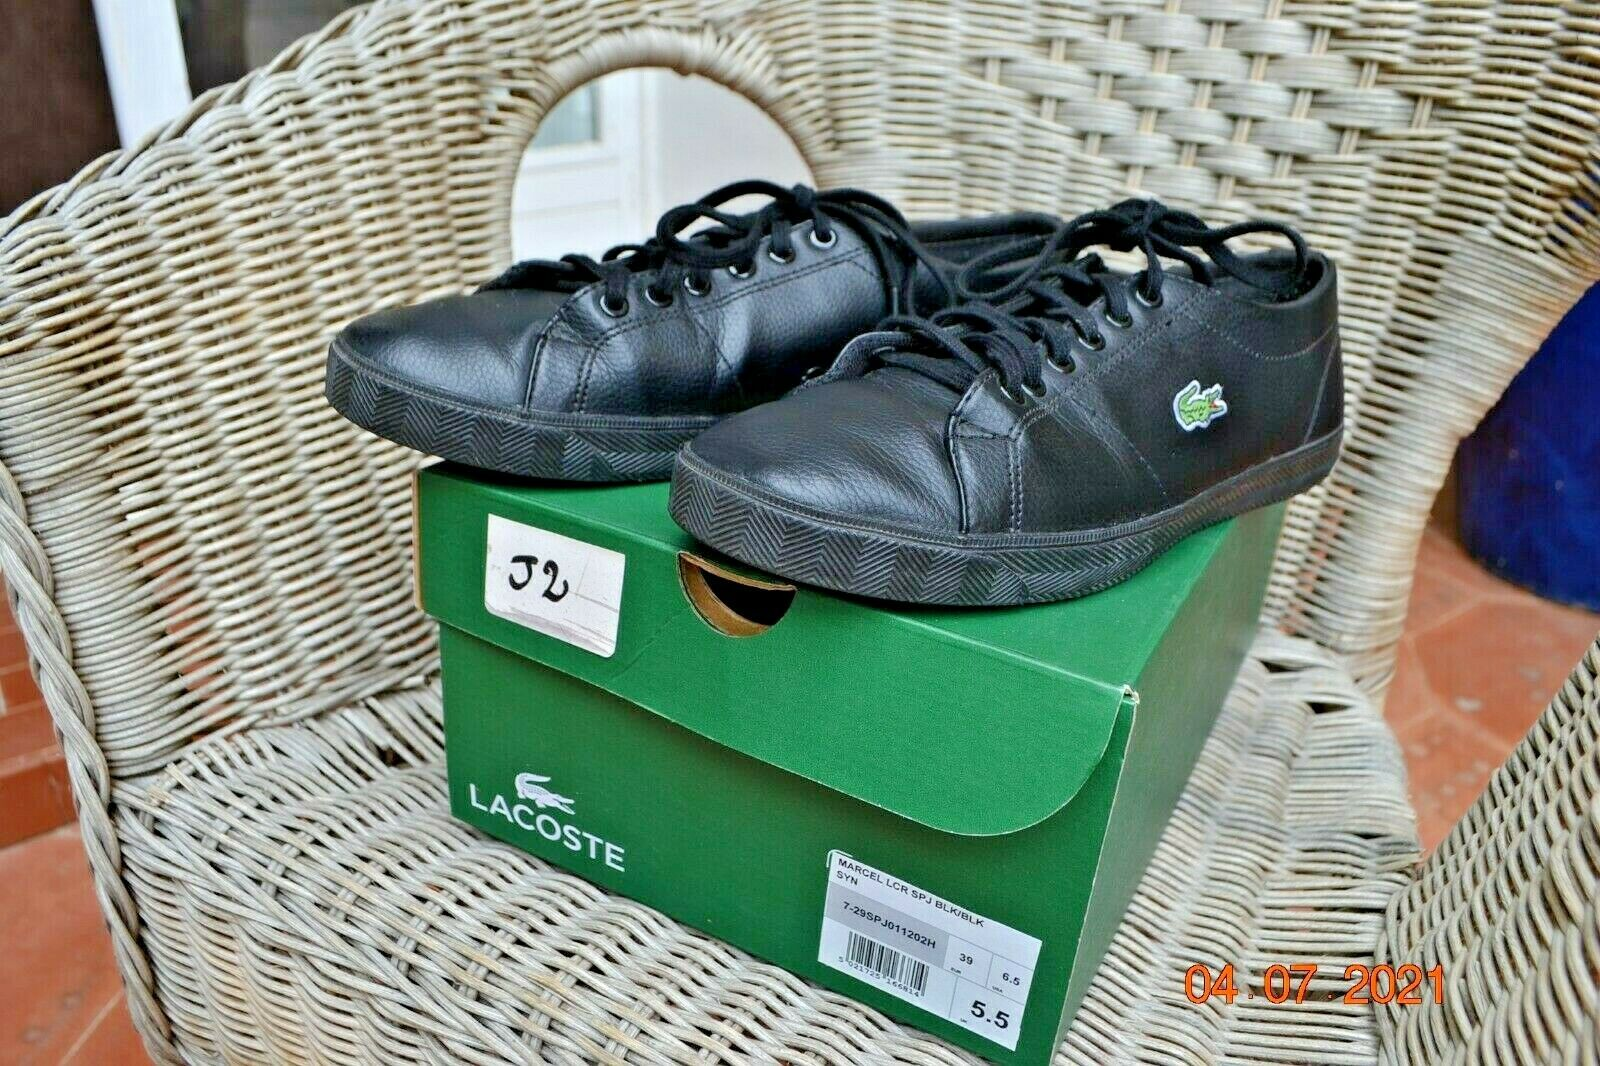 Mens shoes lacoste marcel lcr with her box. detail in listing.